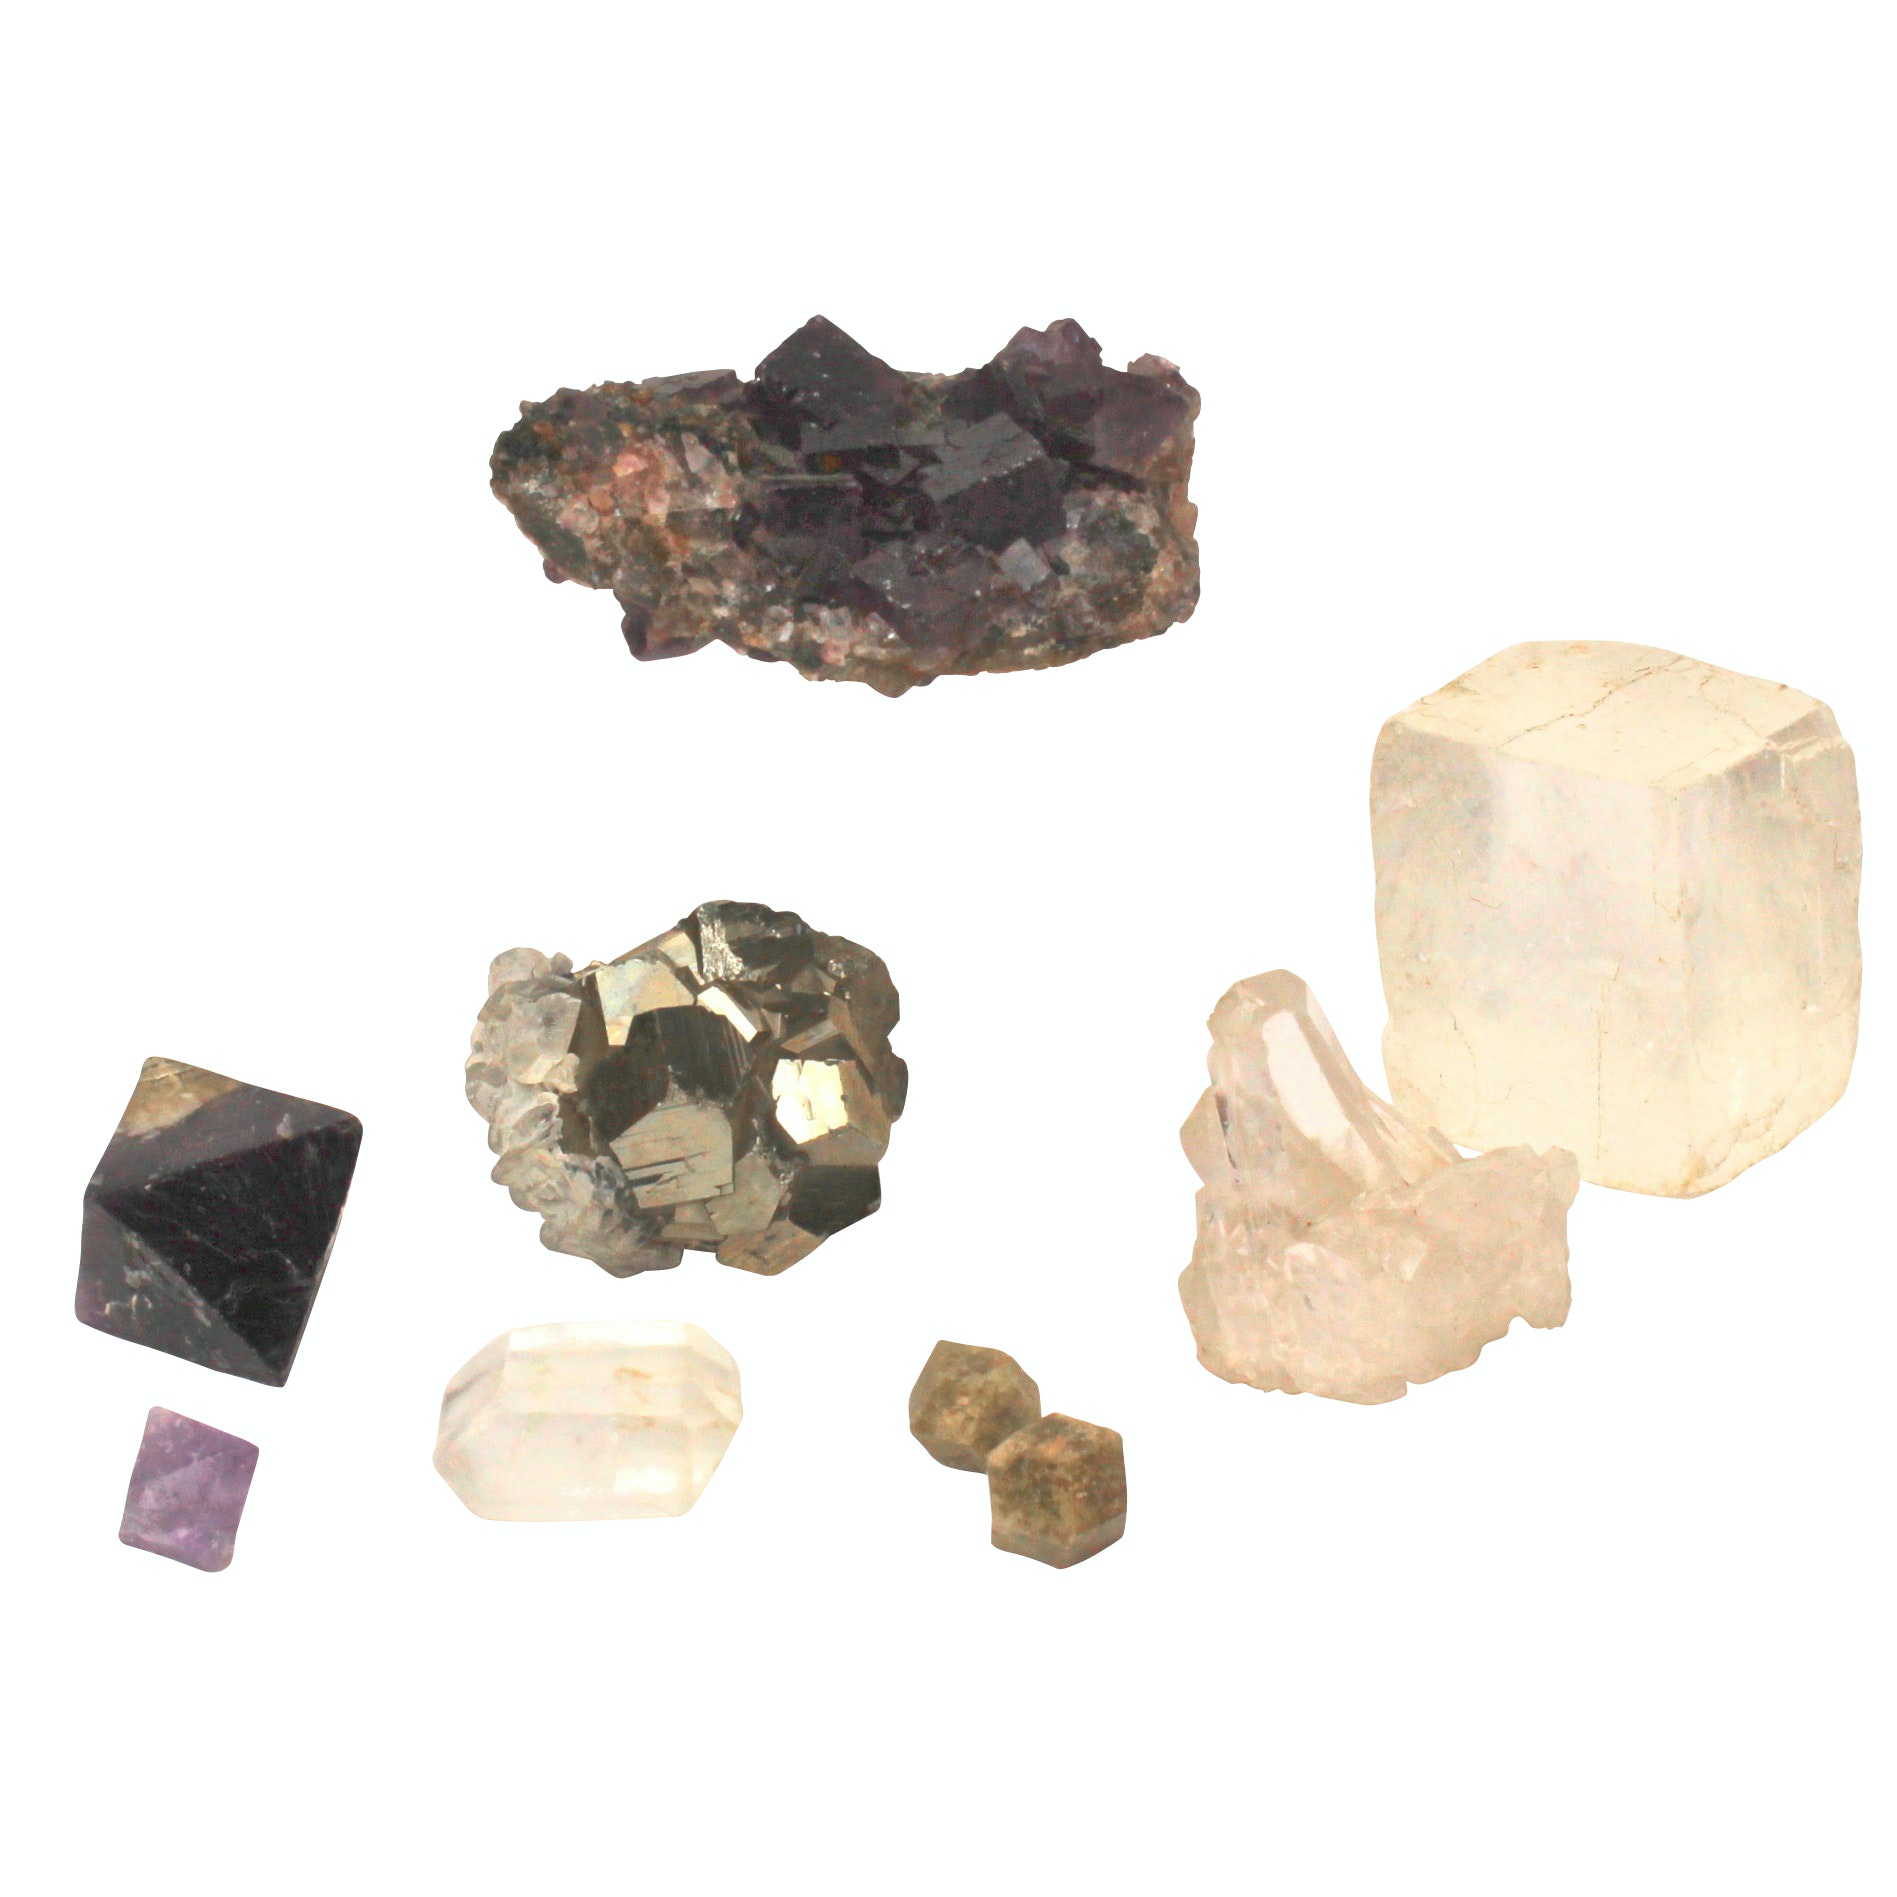 Natural Stone Collection Including Amethyst and Quartz Crystal